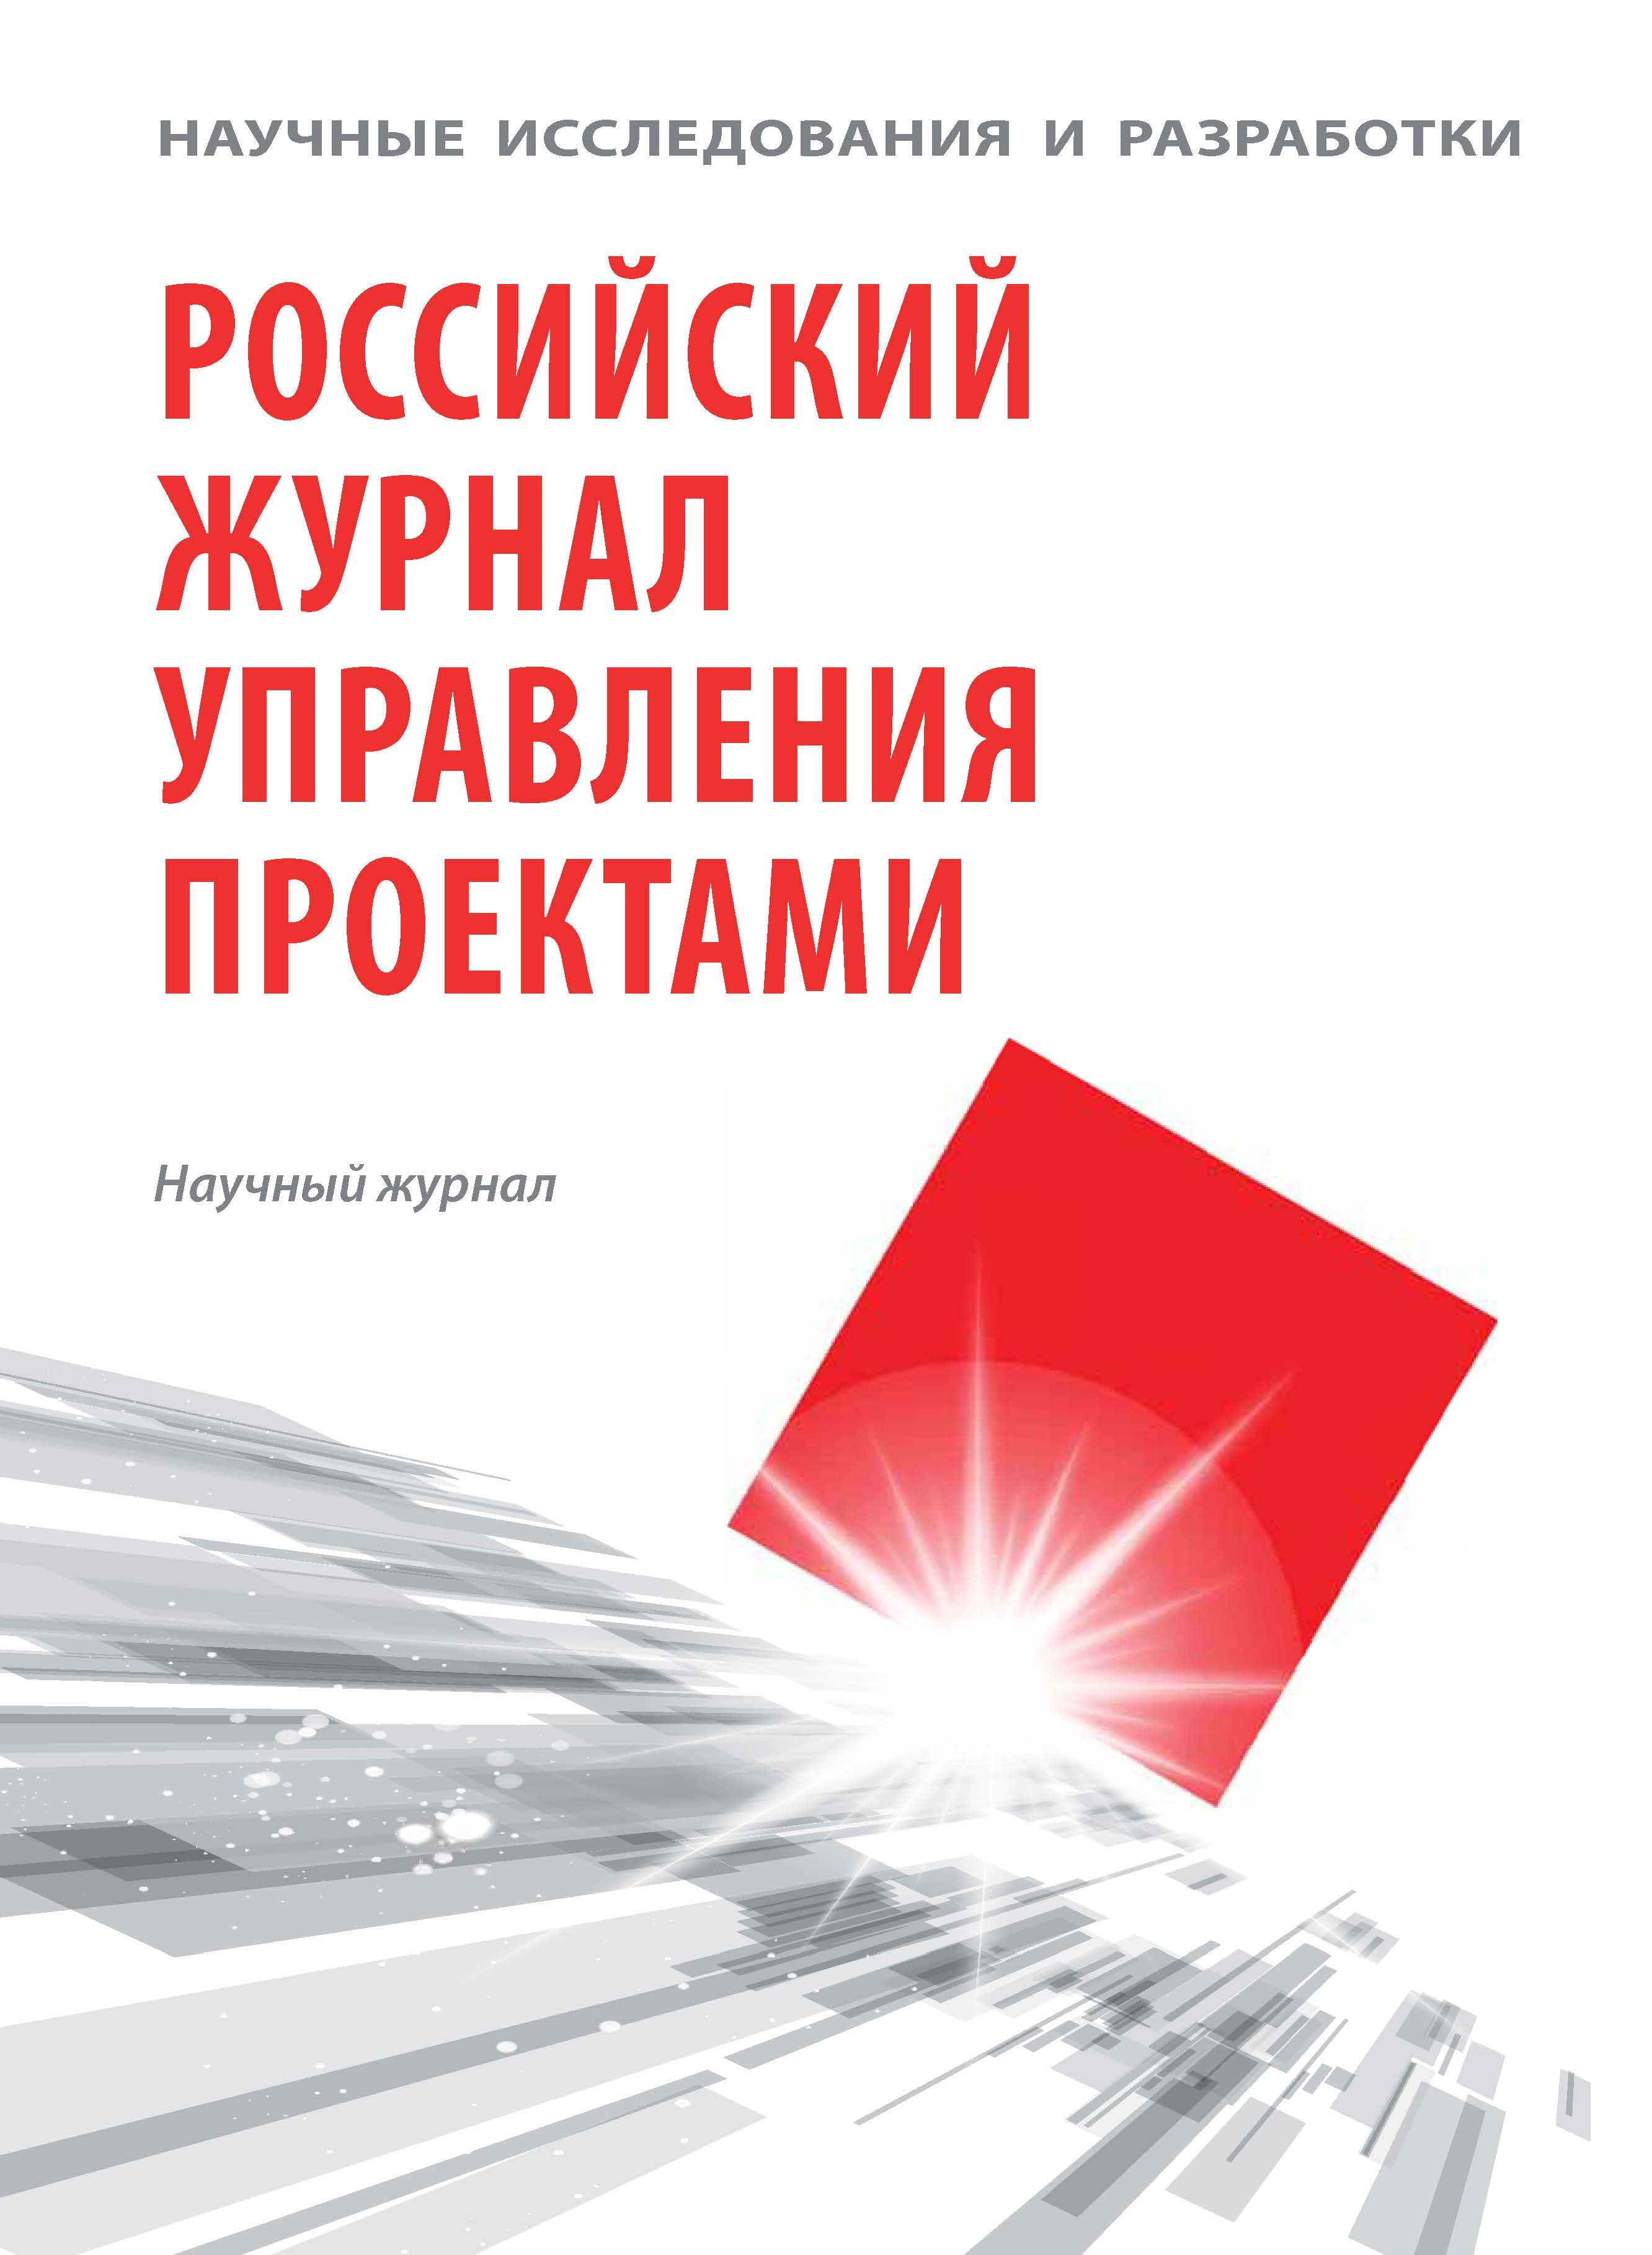 Scientific Research and Development. Russian Journal of Project Management